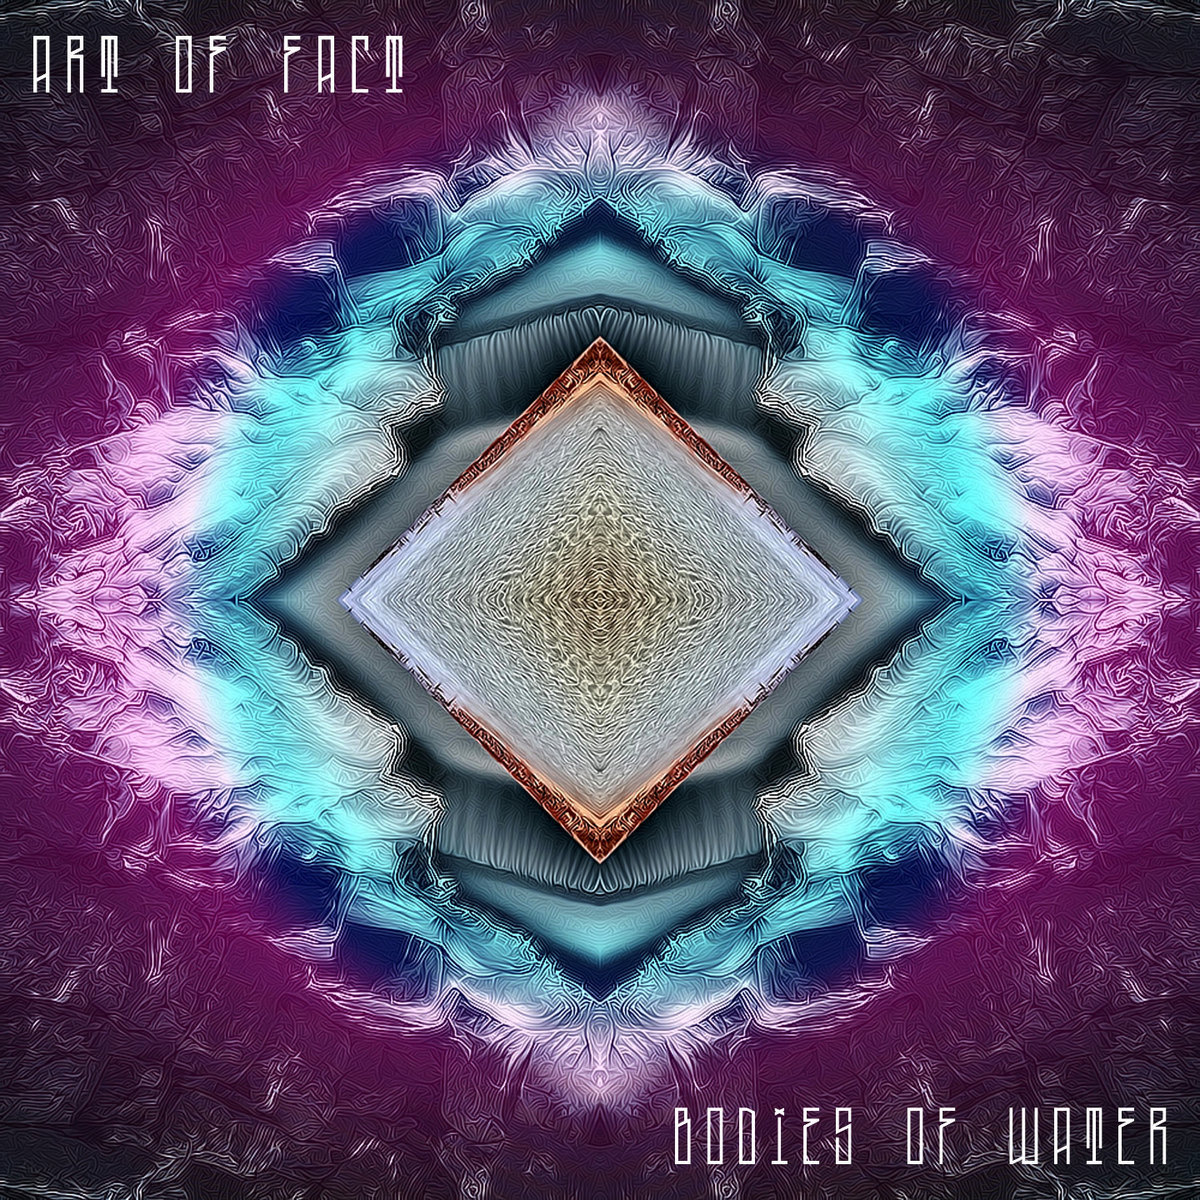 Art of Fact - Liquid Dreams @ 'Bodies of Water' album (electronic, dubstep)